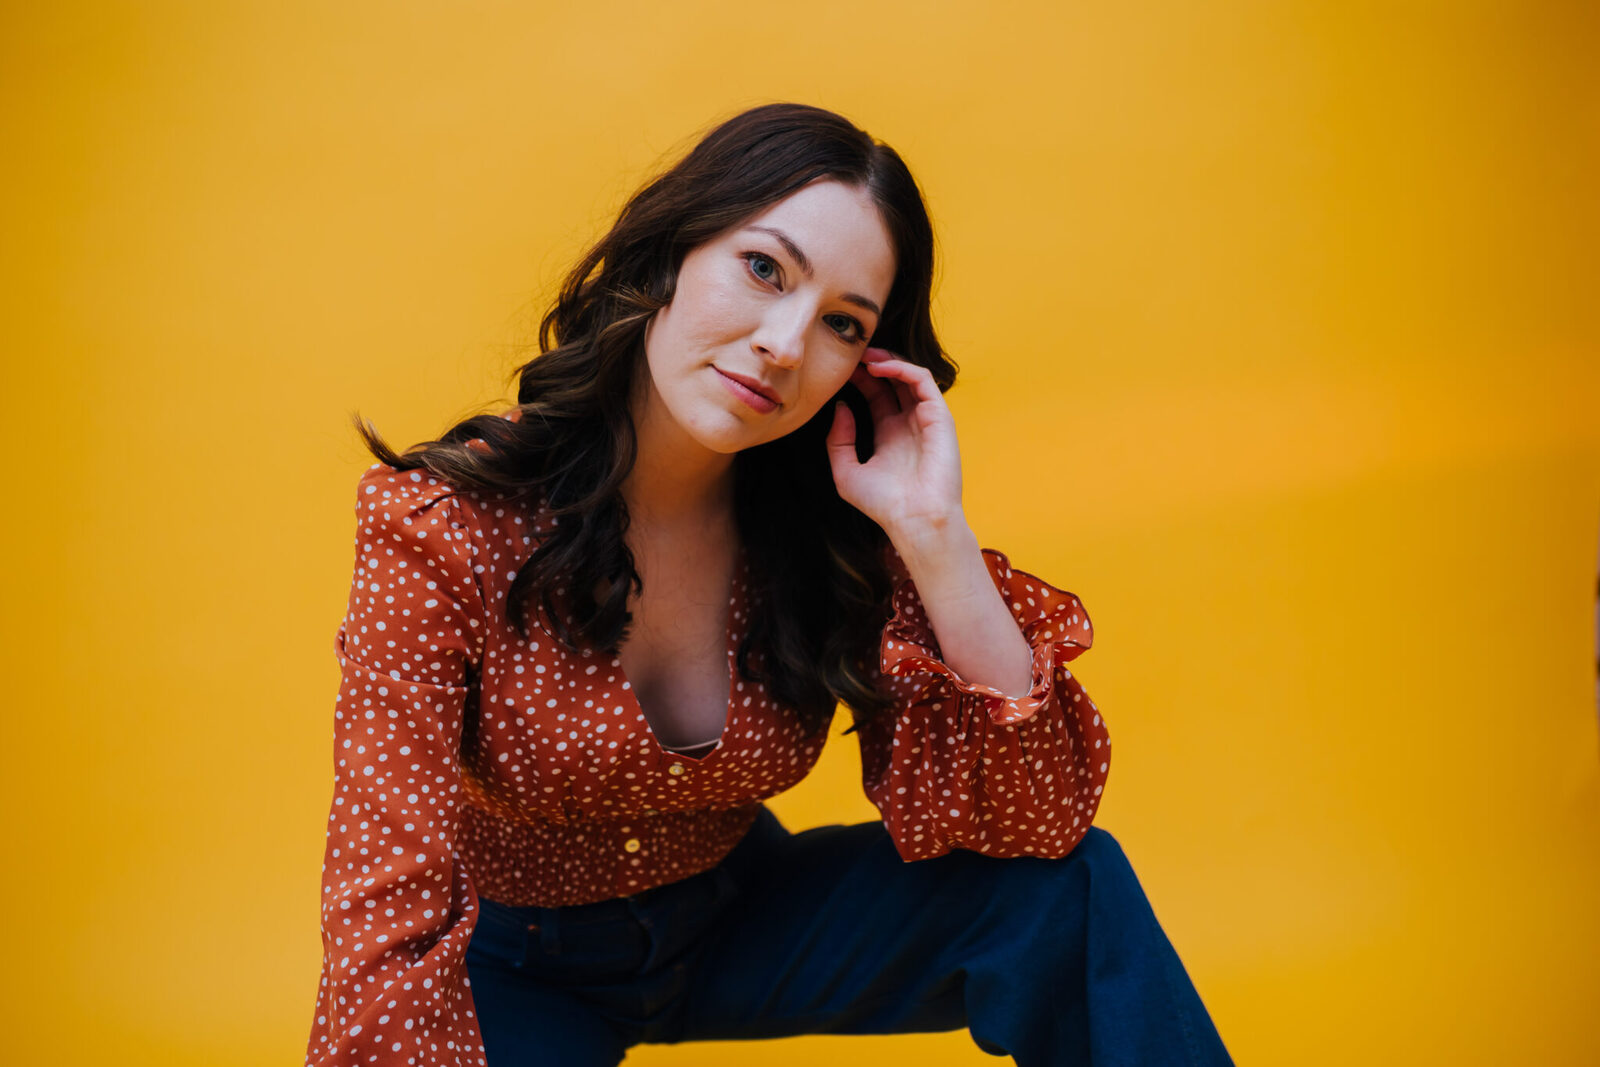 Johanna, wearing a 1970s inspired ruffle top and wide leg jeans, poses with her arm resting on her knee and tilts her head sideways with a smile